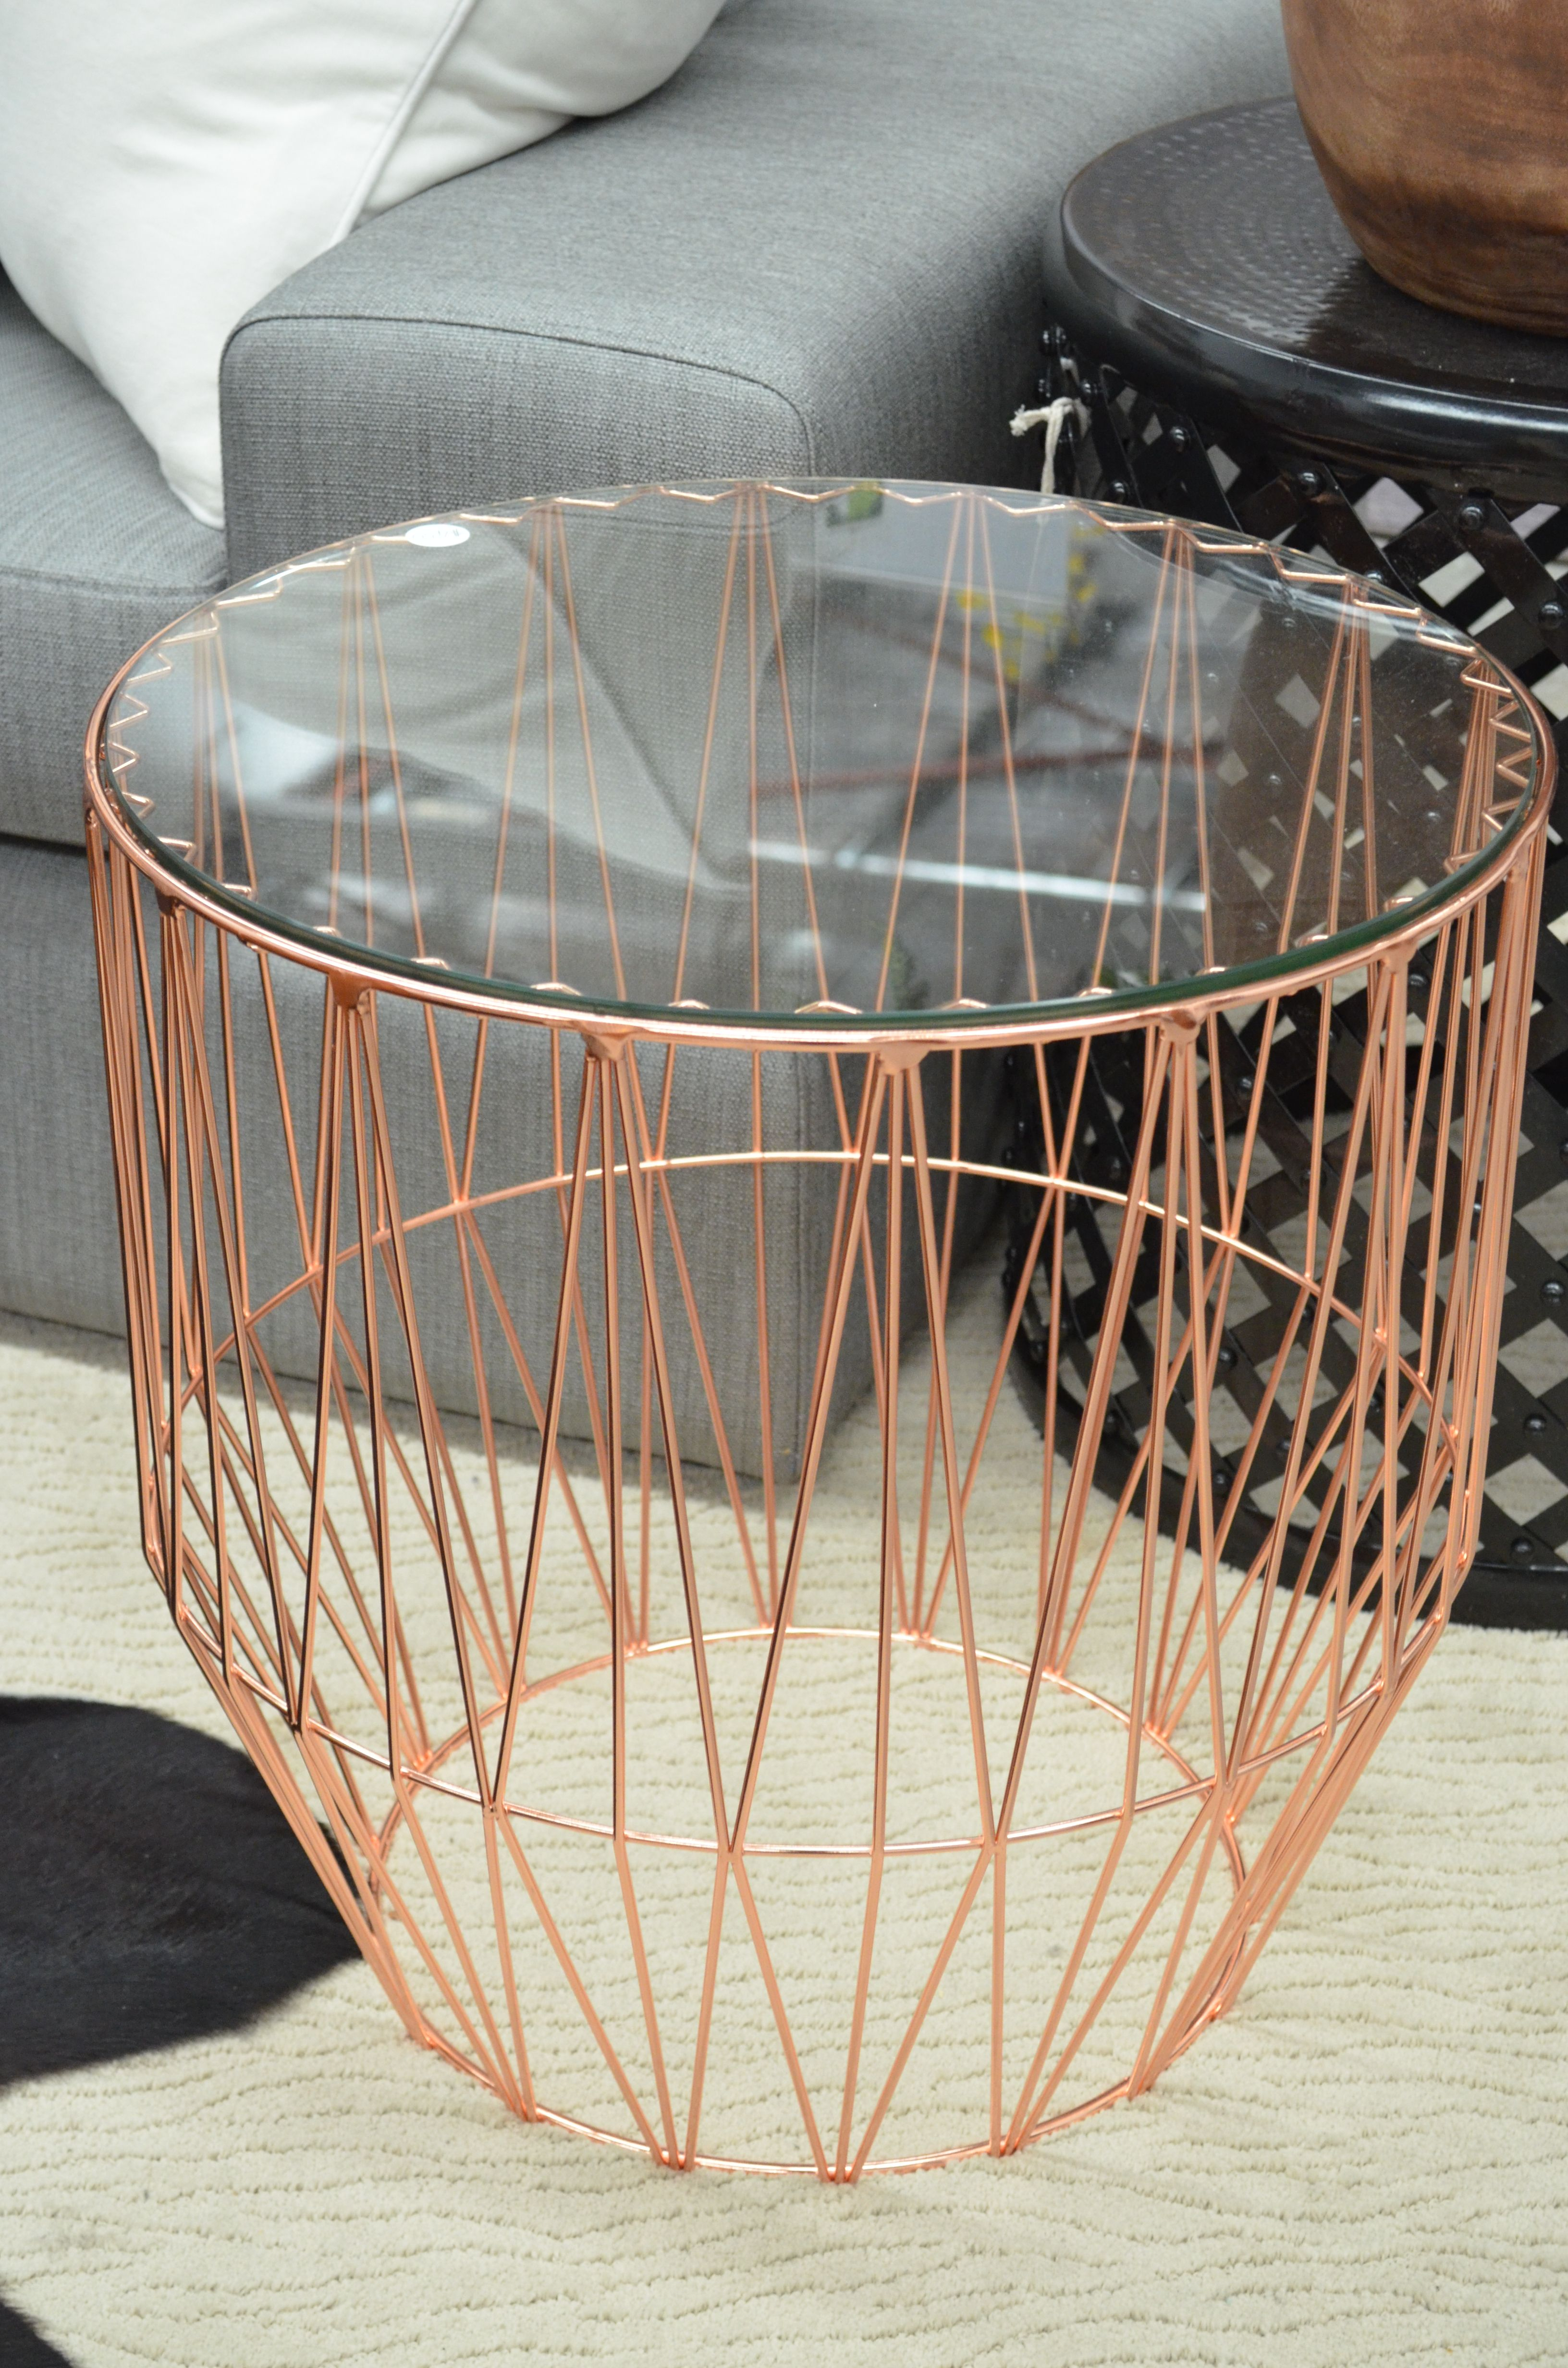 A Rosy Glow Glass Topped Copper Wire Side Table From The General Store Furniture And Homewares Osborne Park Furniture Wire Table Wire Side Table [ 4928 x 3264 Pixel ]